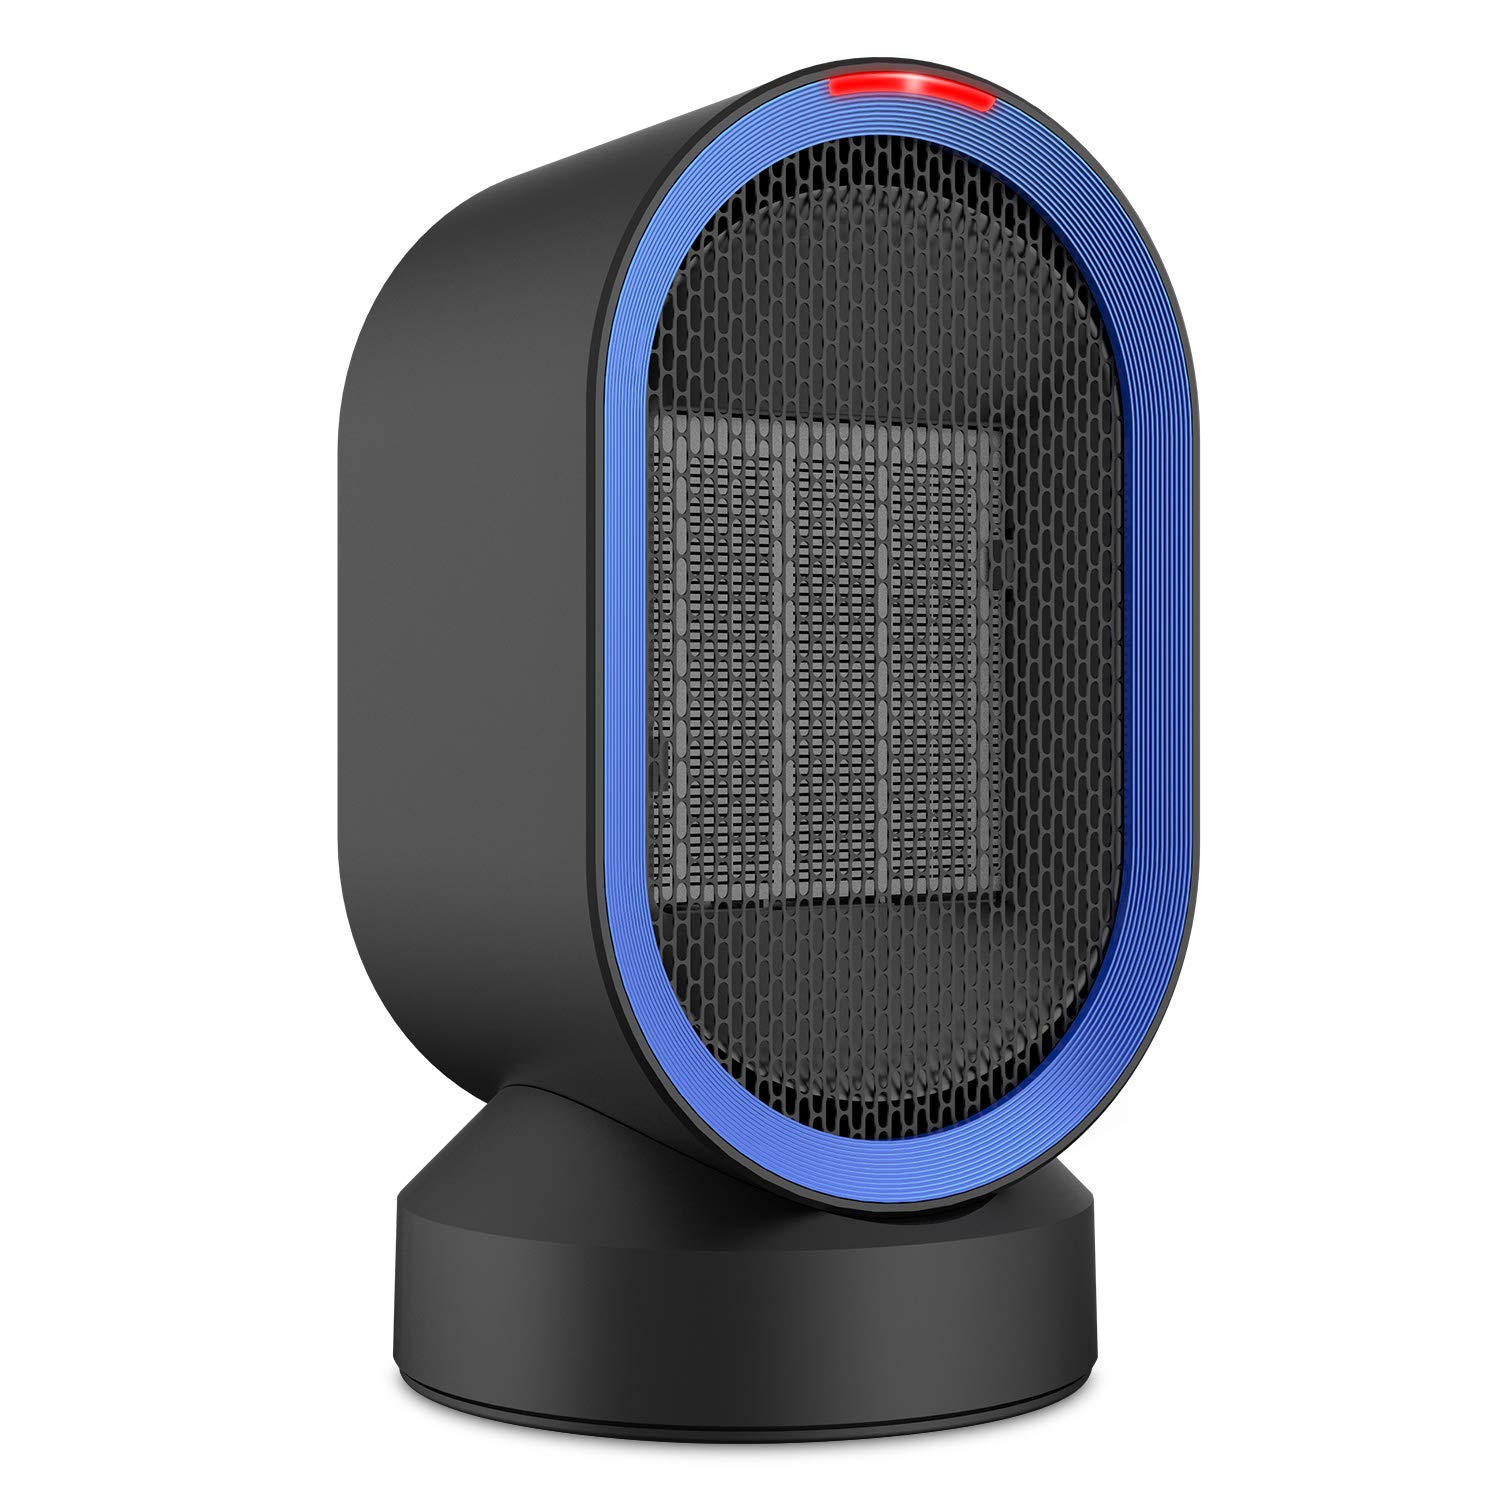 Fitfirst Ceramic Space Heater, ETL Listed Portable Mini Desktop Heater Indoor Use, 2s Quick Heat-up, Ultra Quite, Auto-Oscillation for Office Table Home Dorm (600W) by Fitfirst